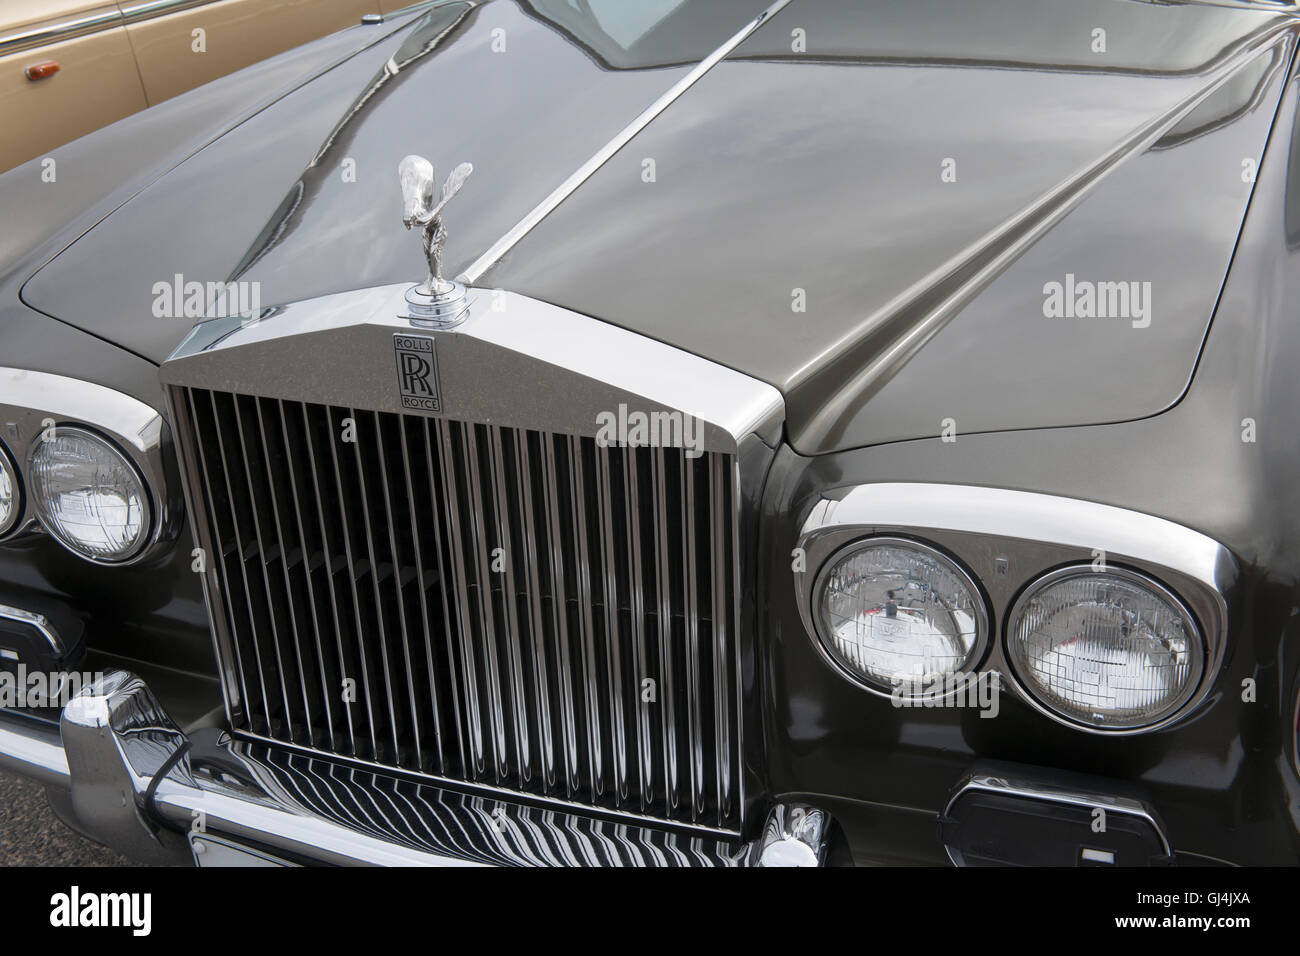 Front of Rolls Royce motor car. - Stock Image